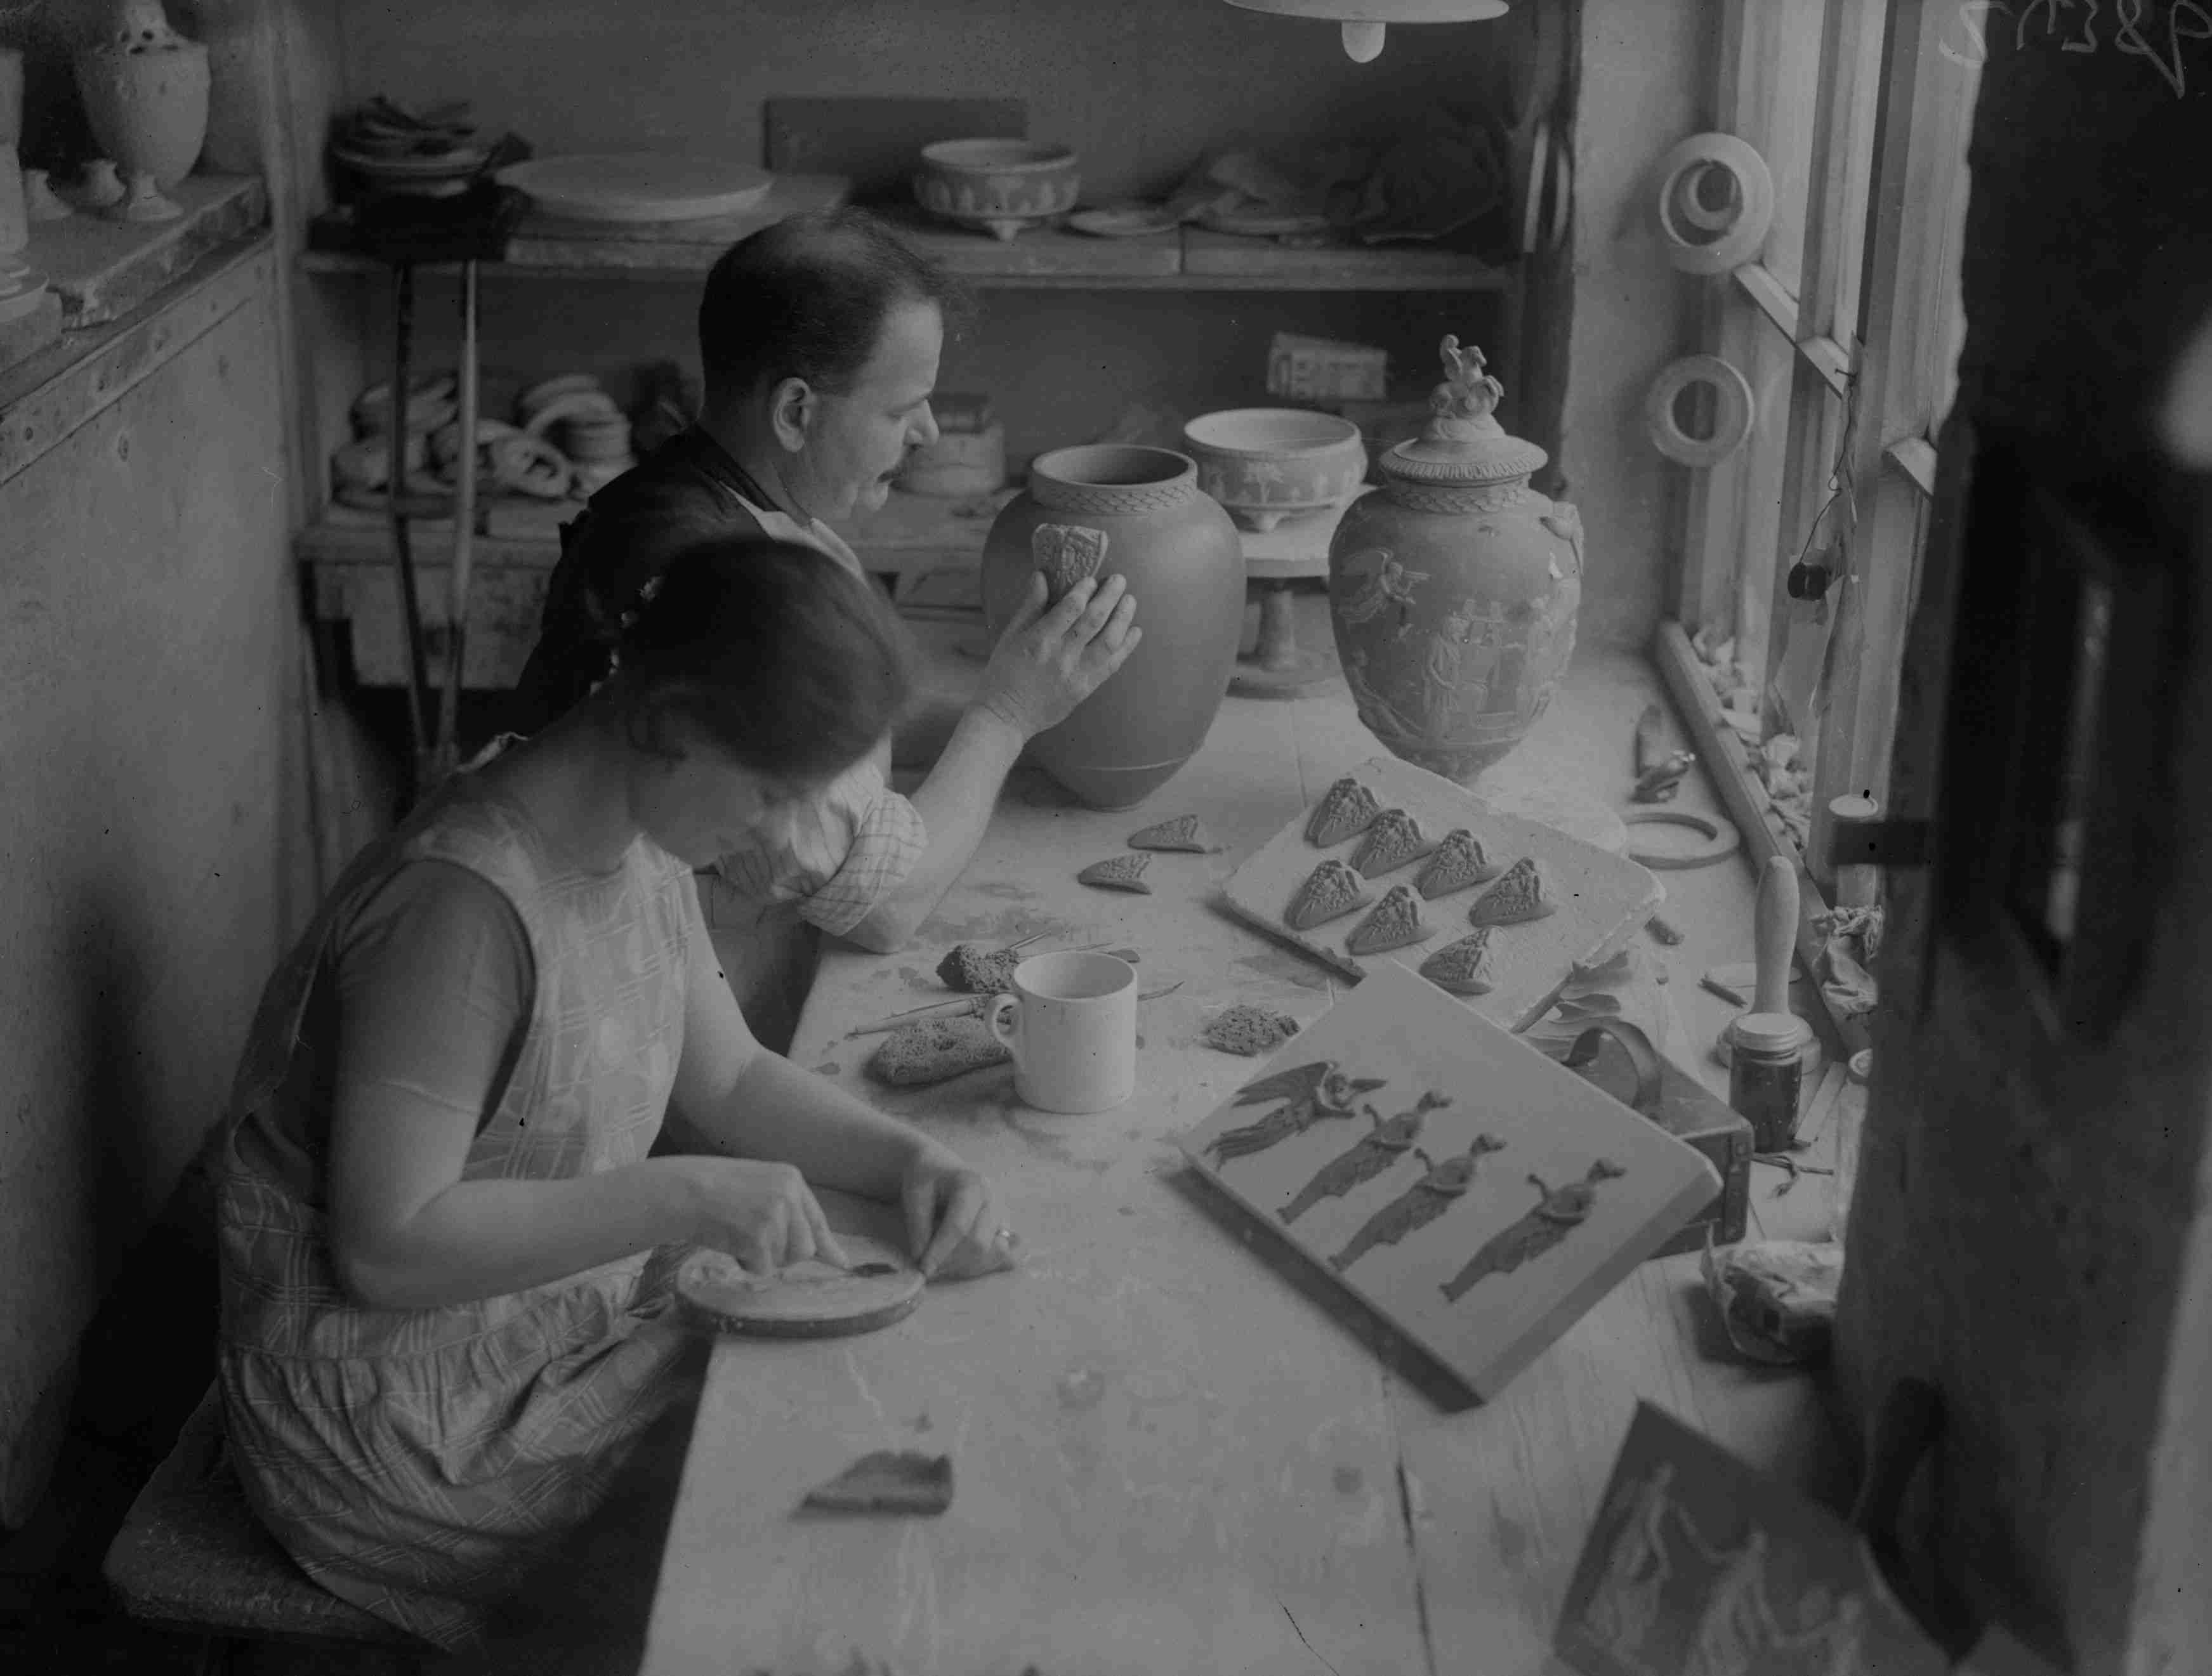 Two technicians applying relief moulding to pots in a workshop at the Wedgwood pottery, Stoke-On-Trent, Staffordshire.